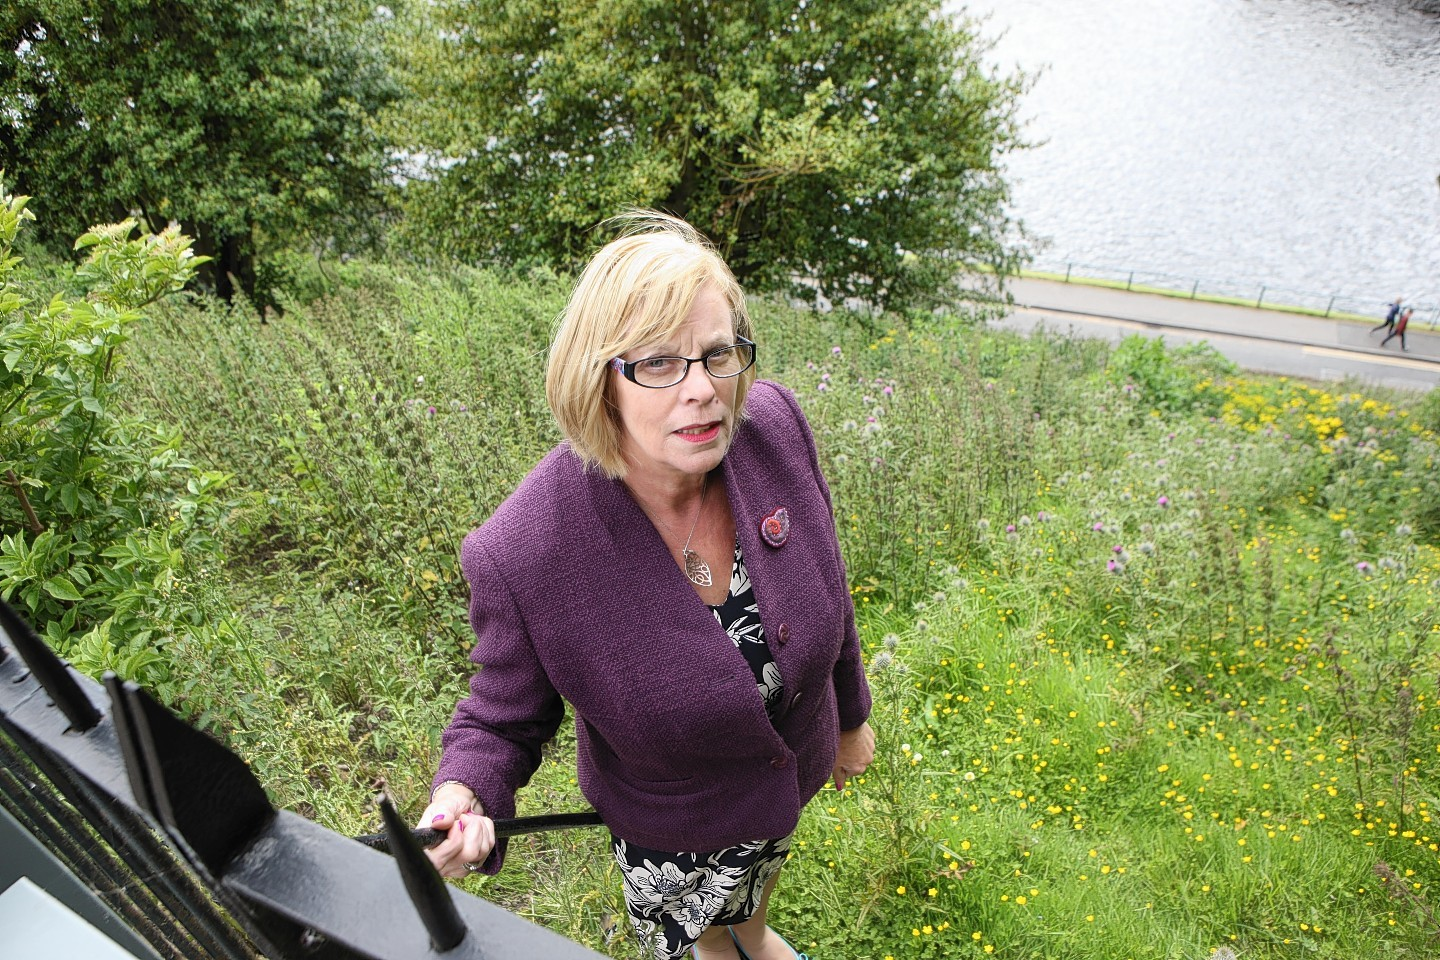 City-centre councillor Bet McAllister believes the hill requires work